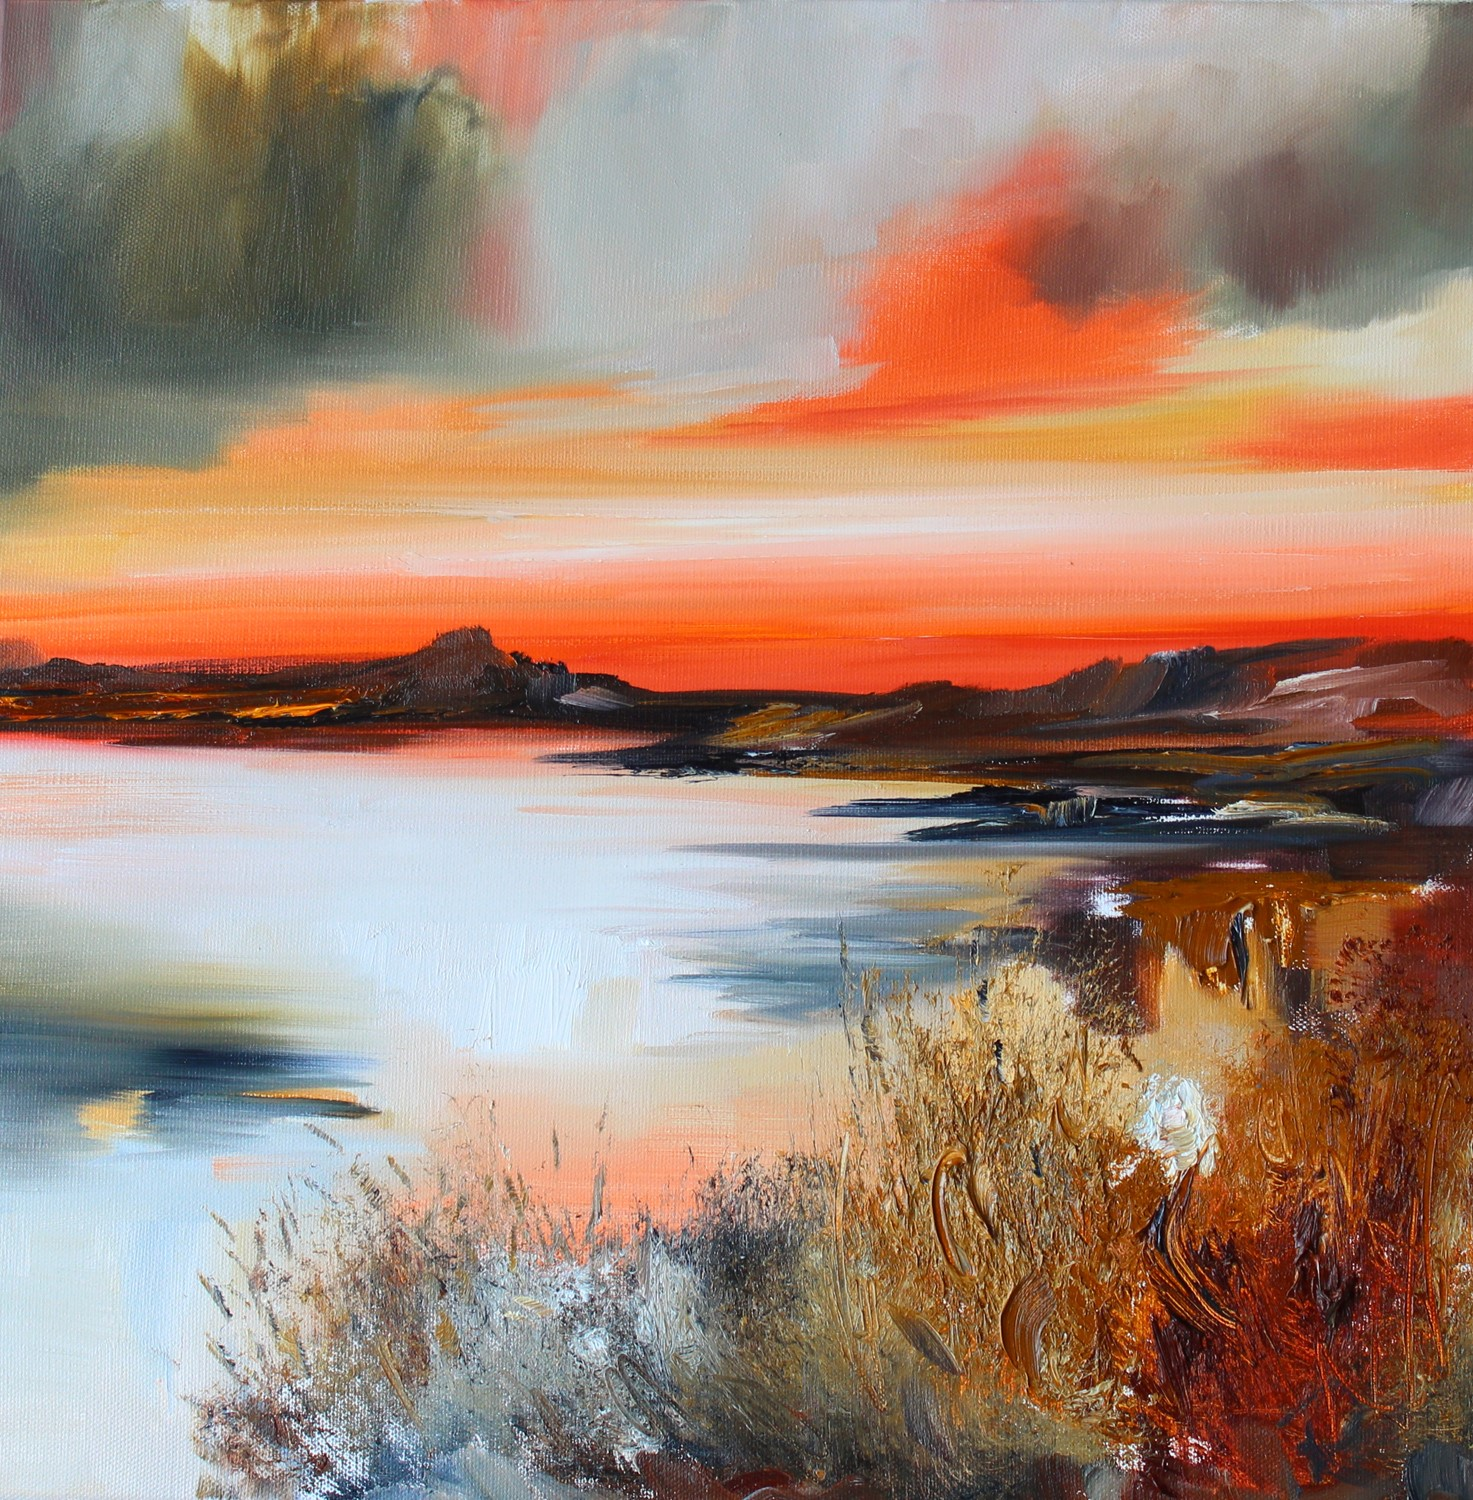 'A Dramatic Sunset' by artist Rosanne Barr